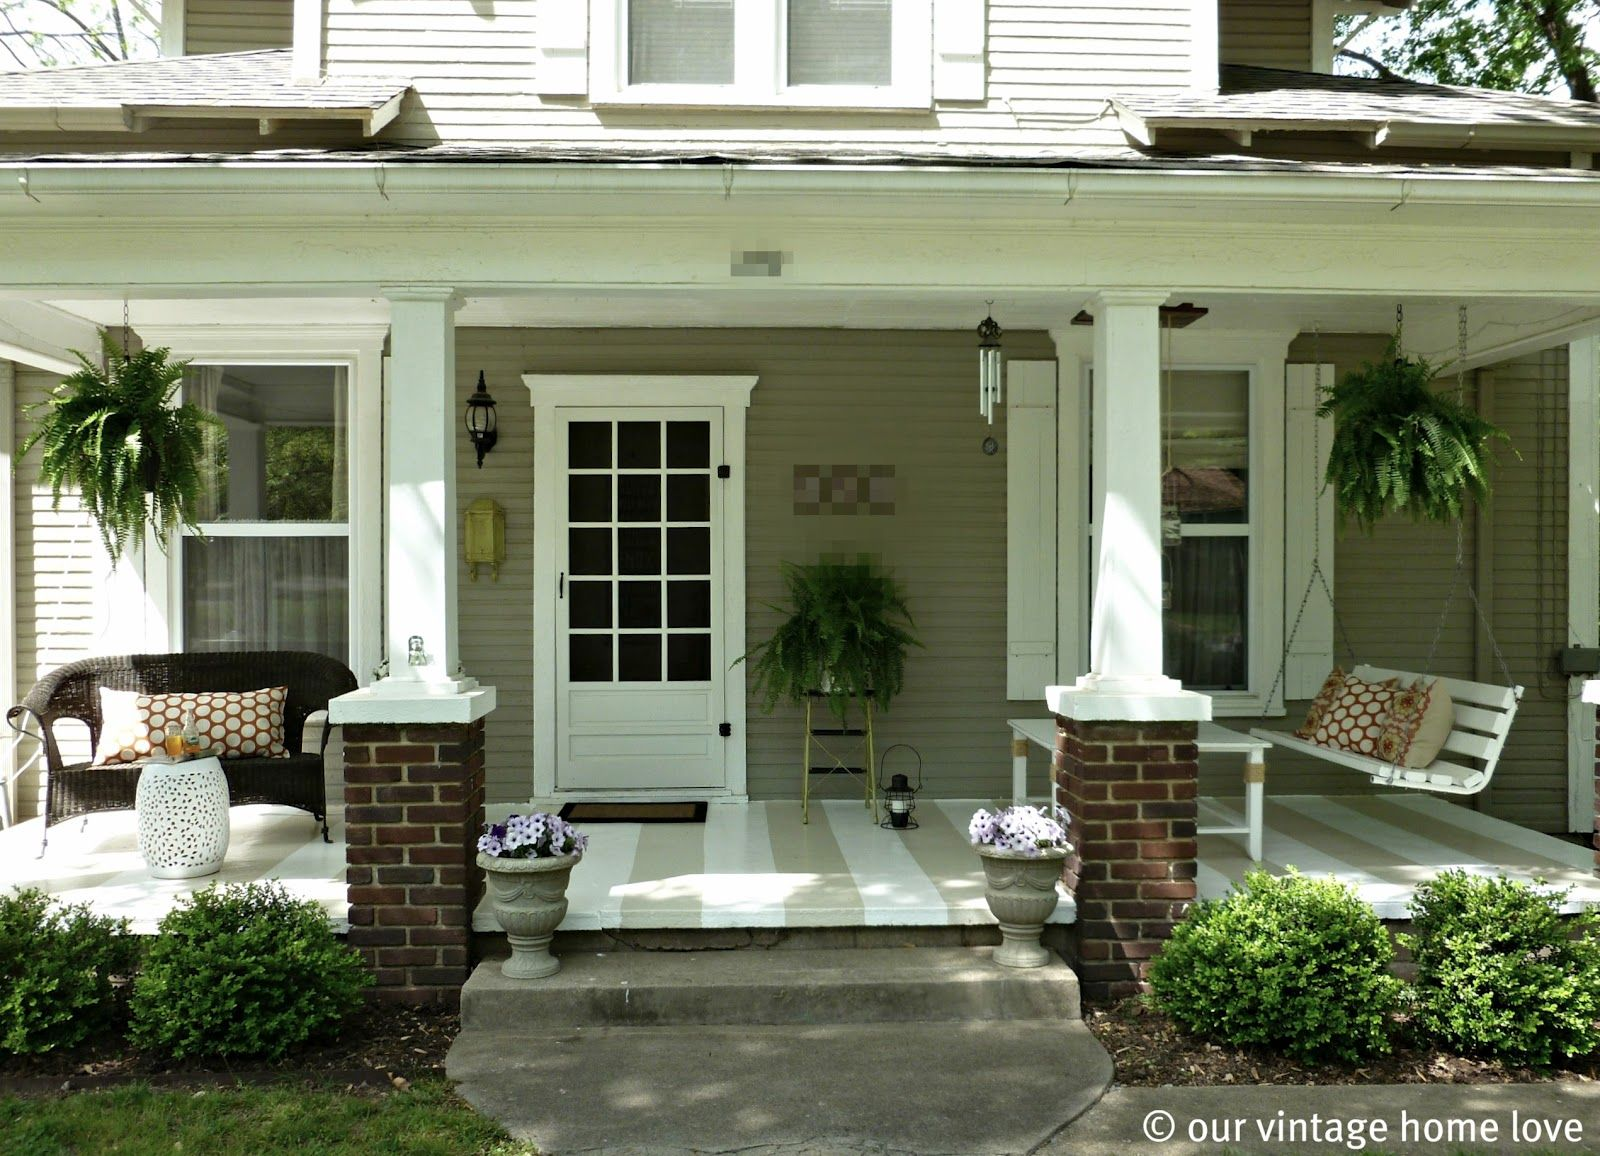 Front Porch Decorating Ideas | our vintage home love: Spring ...